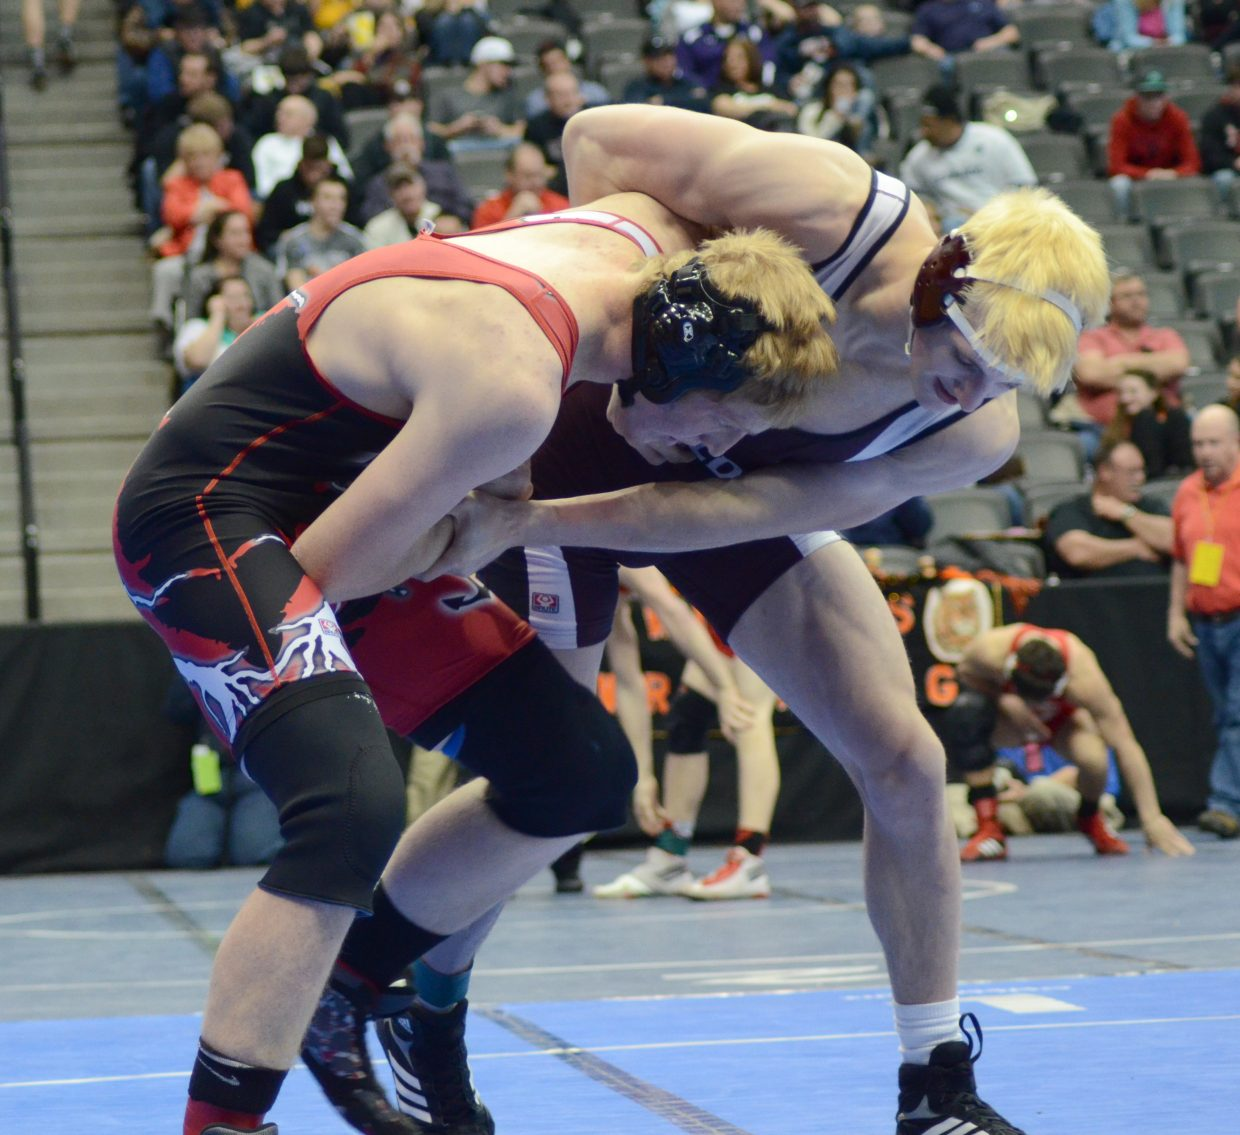 Steamboat's Brandon Yeager couldn't take down Golden's Ian Cheatum in their consolation semifinal Saturday, losing 10-2.